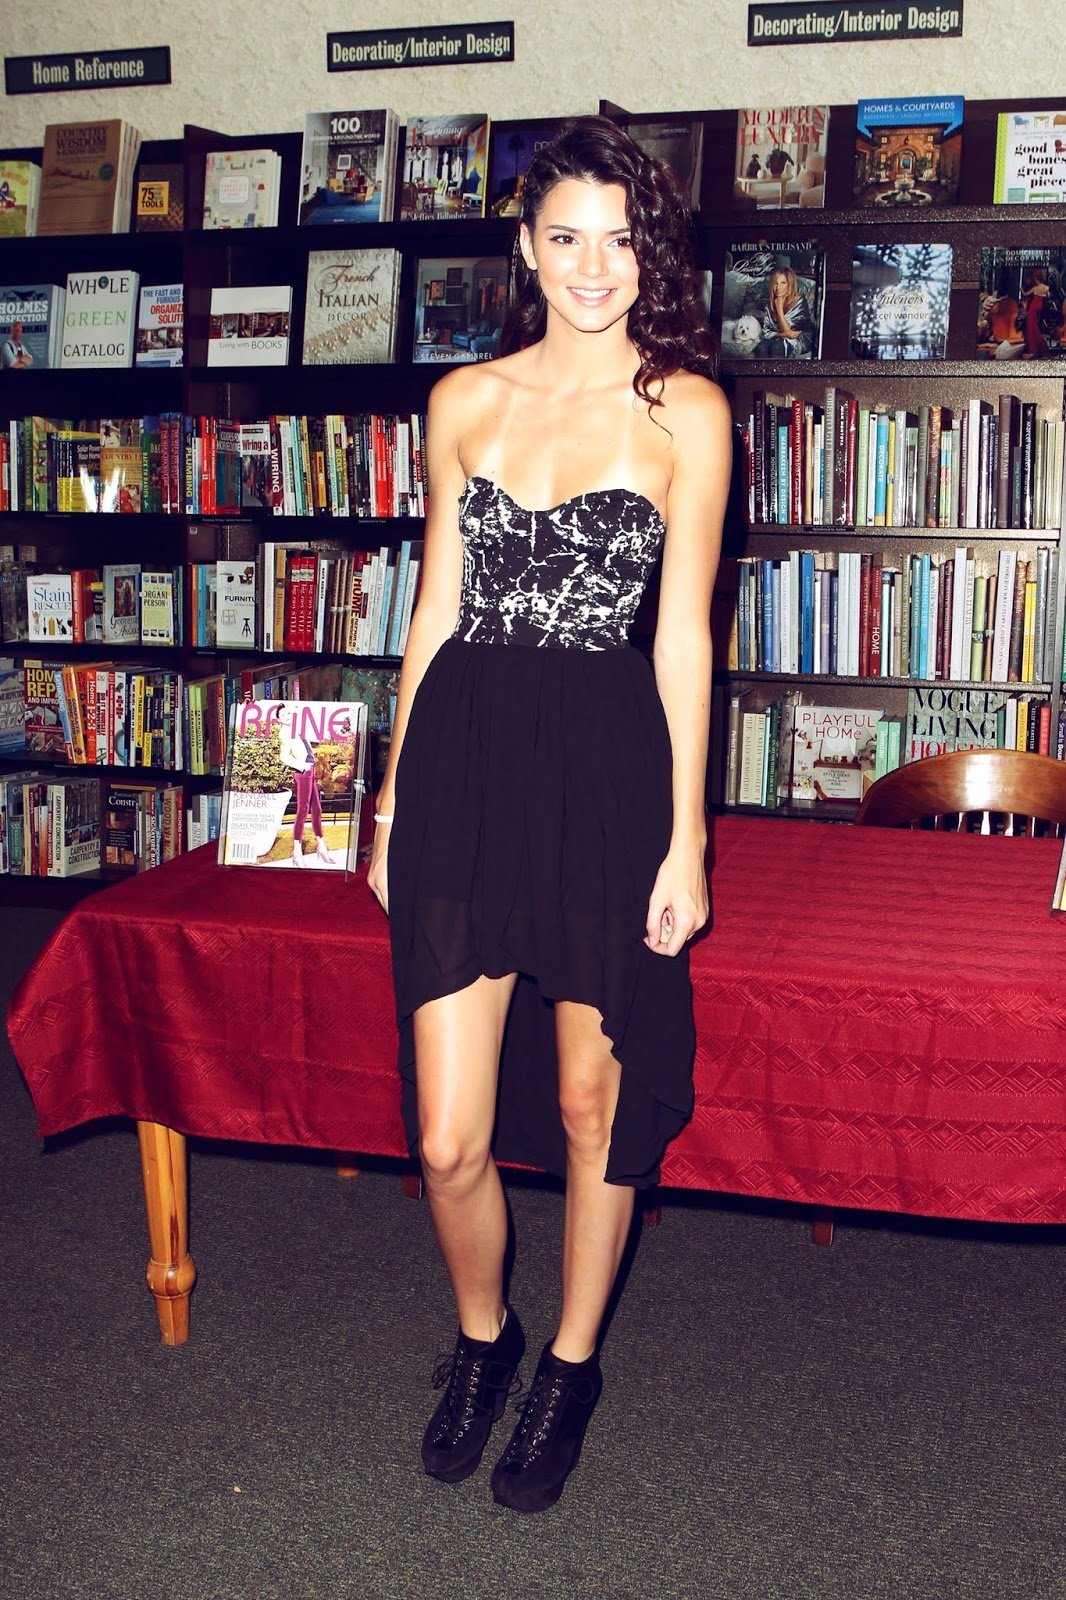 14 - Signing and Autograph RAINE Magazine at Barnes & Noble on August 18, 2012